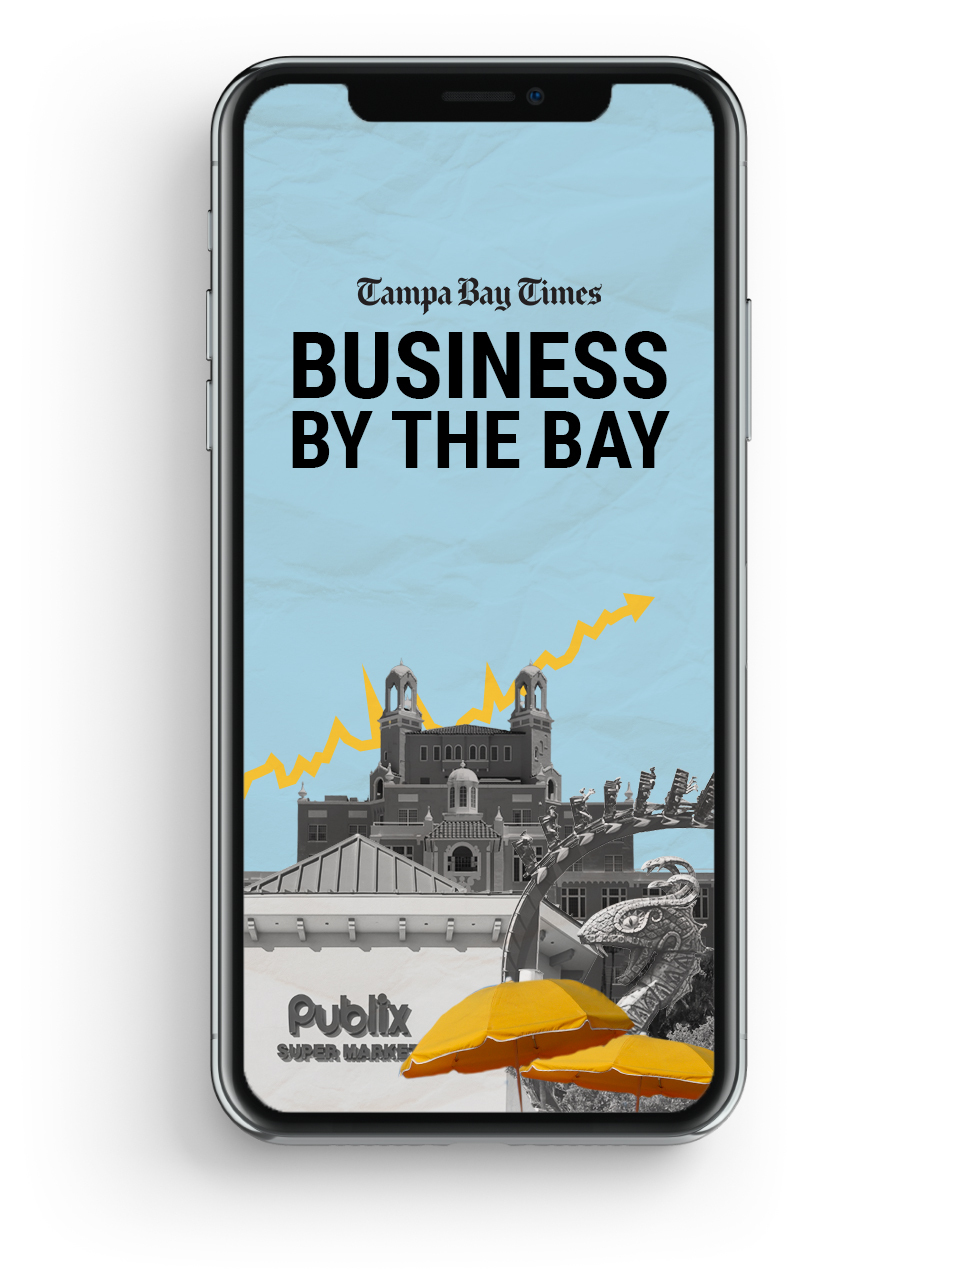 The Tampa Bay Times 'Business by the Bay' newsletter